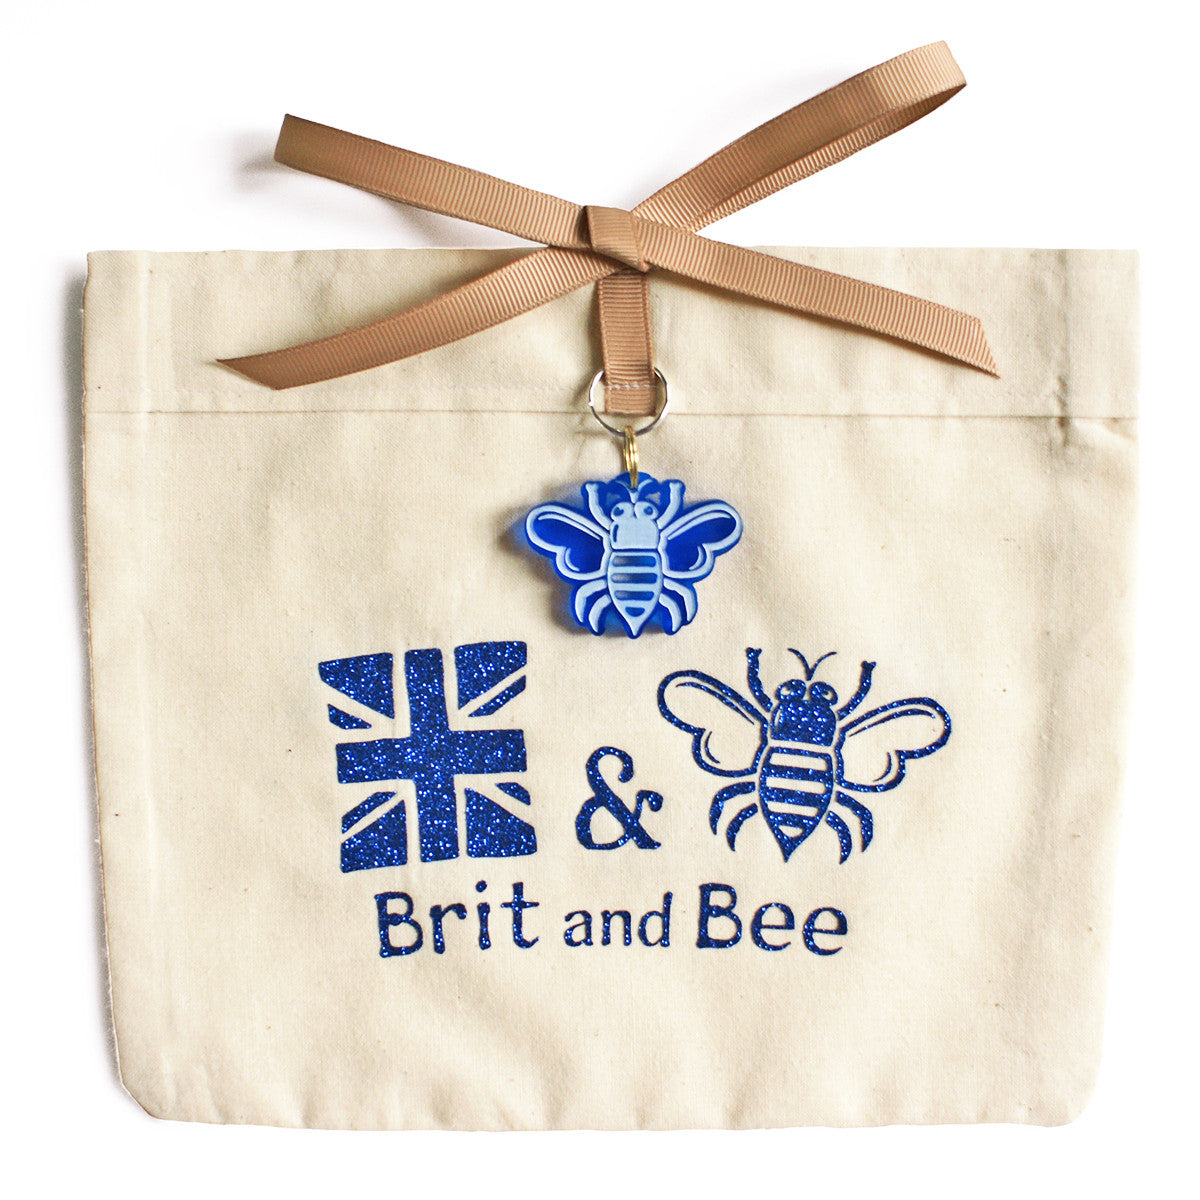 Brit and Bee Sorority Logo Decal - Sigma Delta Tau